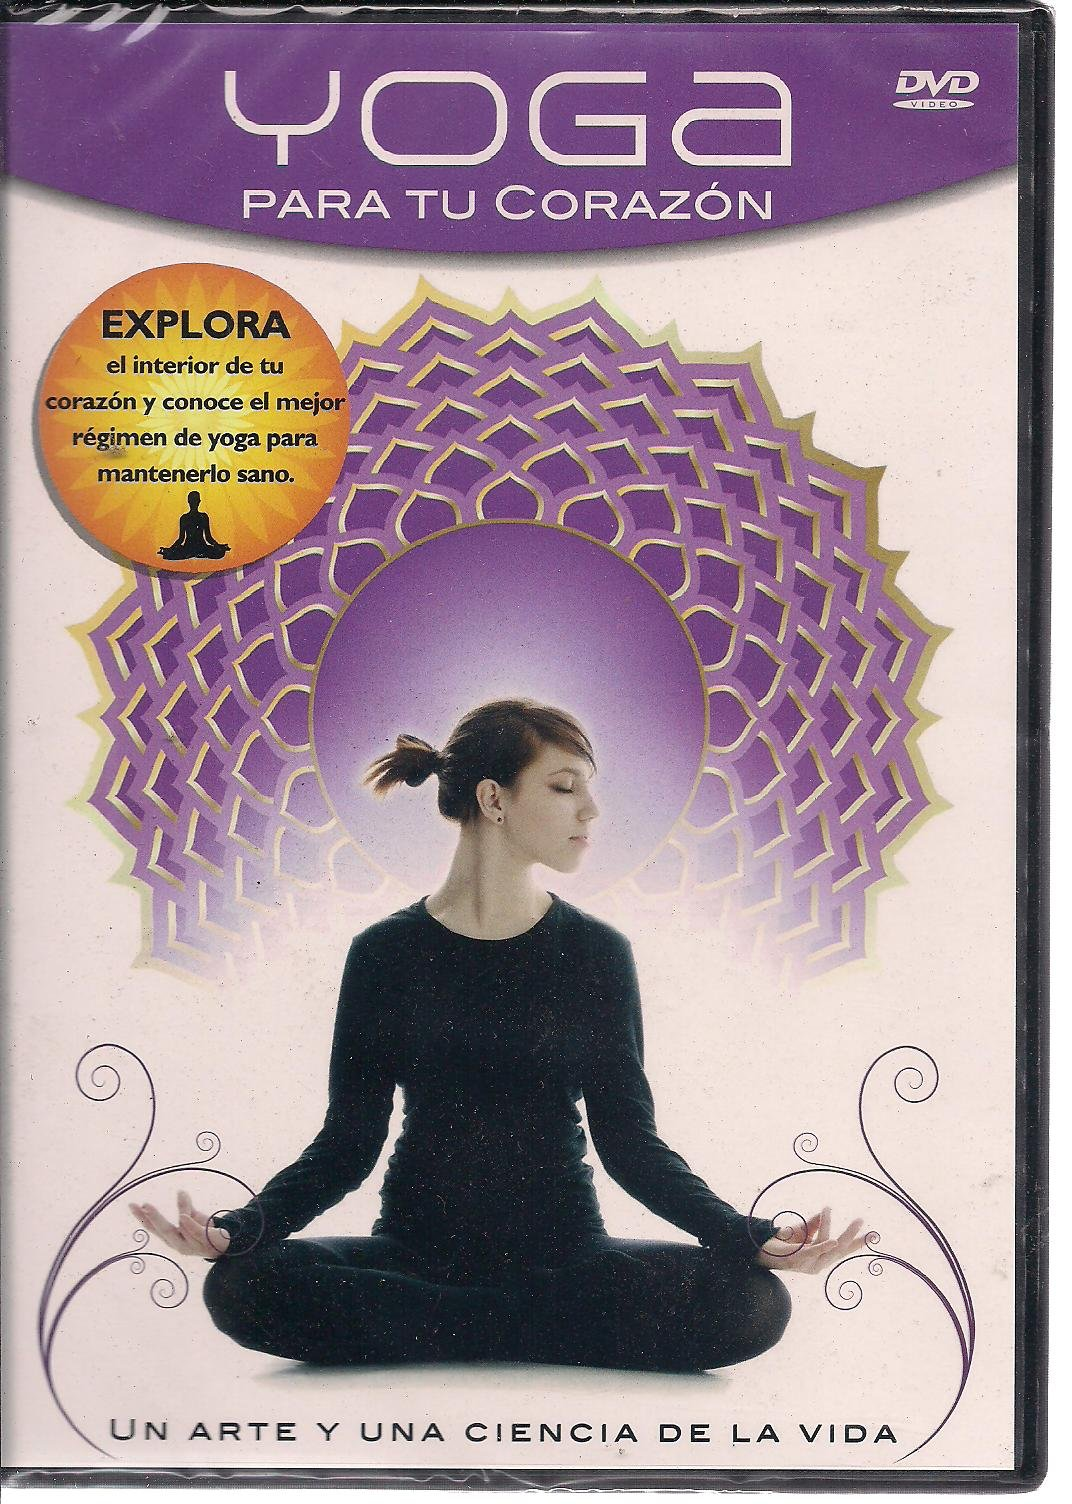 YOGA PARA TU CORAZON: Varios: 7502220551247: Amazon.com: Books